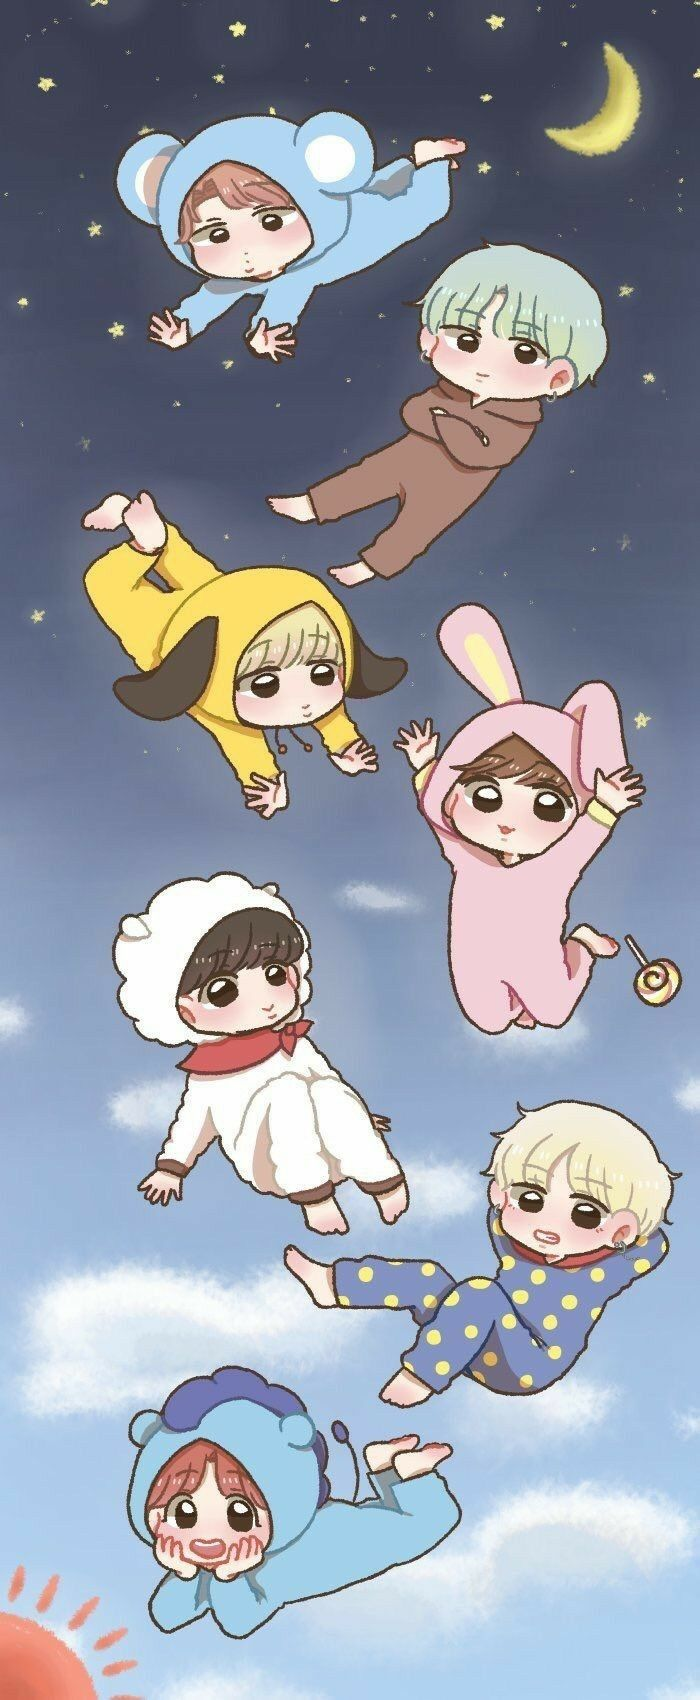 BTS WALLPAPER Bts lockscreen, Bts chibi, Bts wallpaper